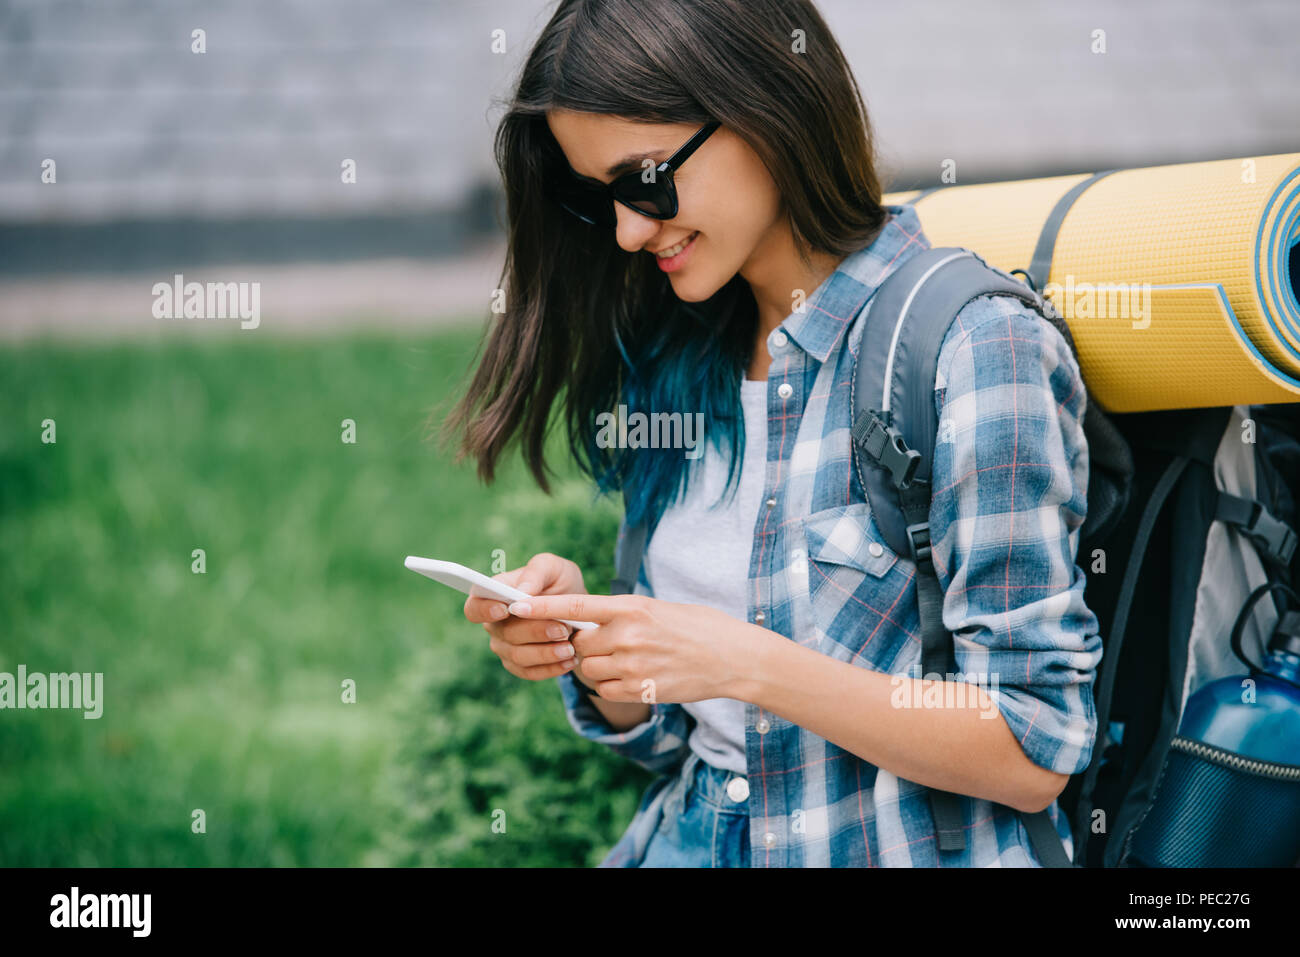 smiling young woman with backpack using smartphone - Stock Image